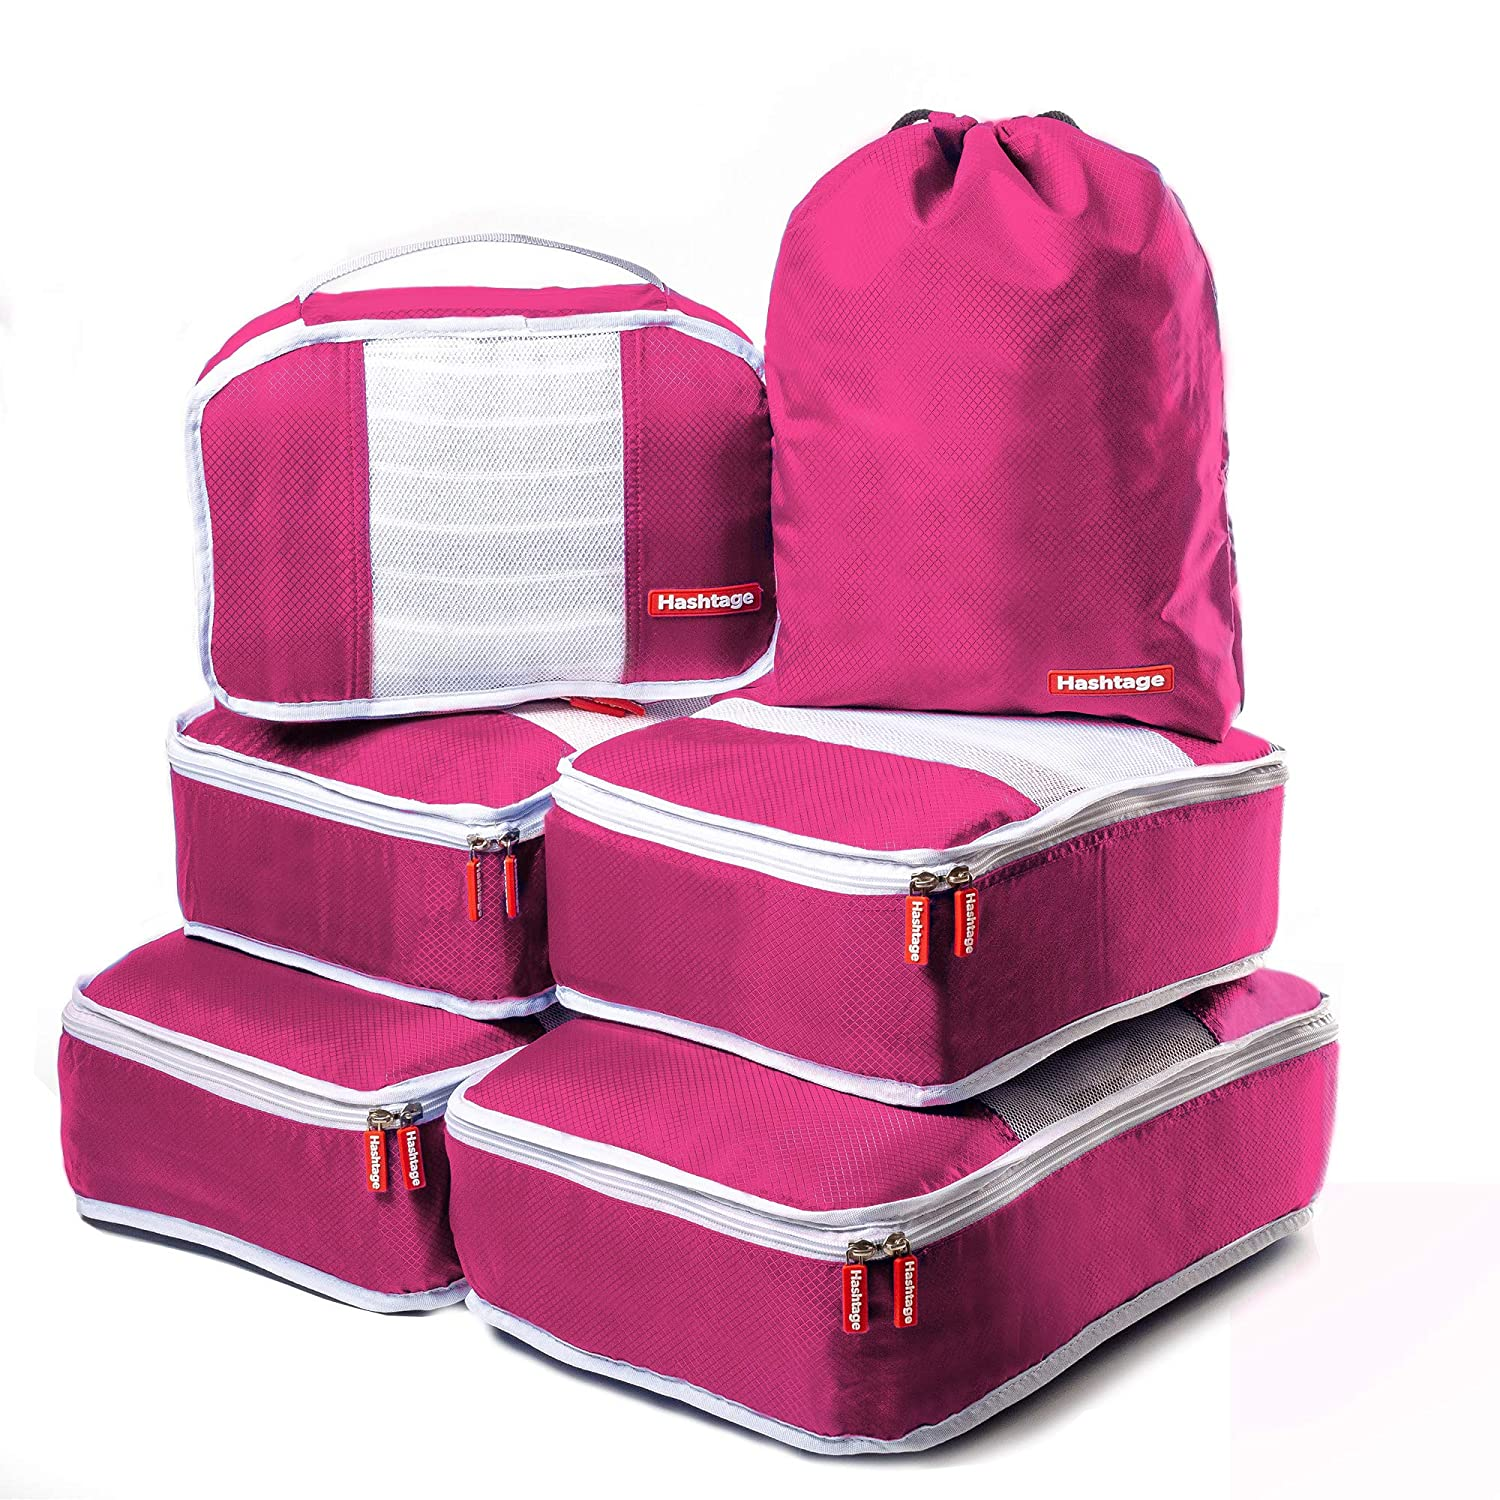 6 Set Packing Bags Hashtage/® Packing Cubes Red Packing Cube for Travel Lightweight Packing Cases Packing Organiser for Luggage